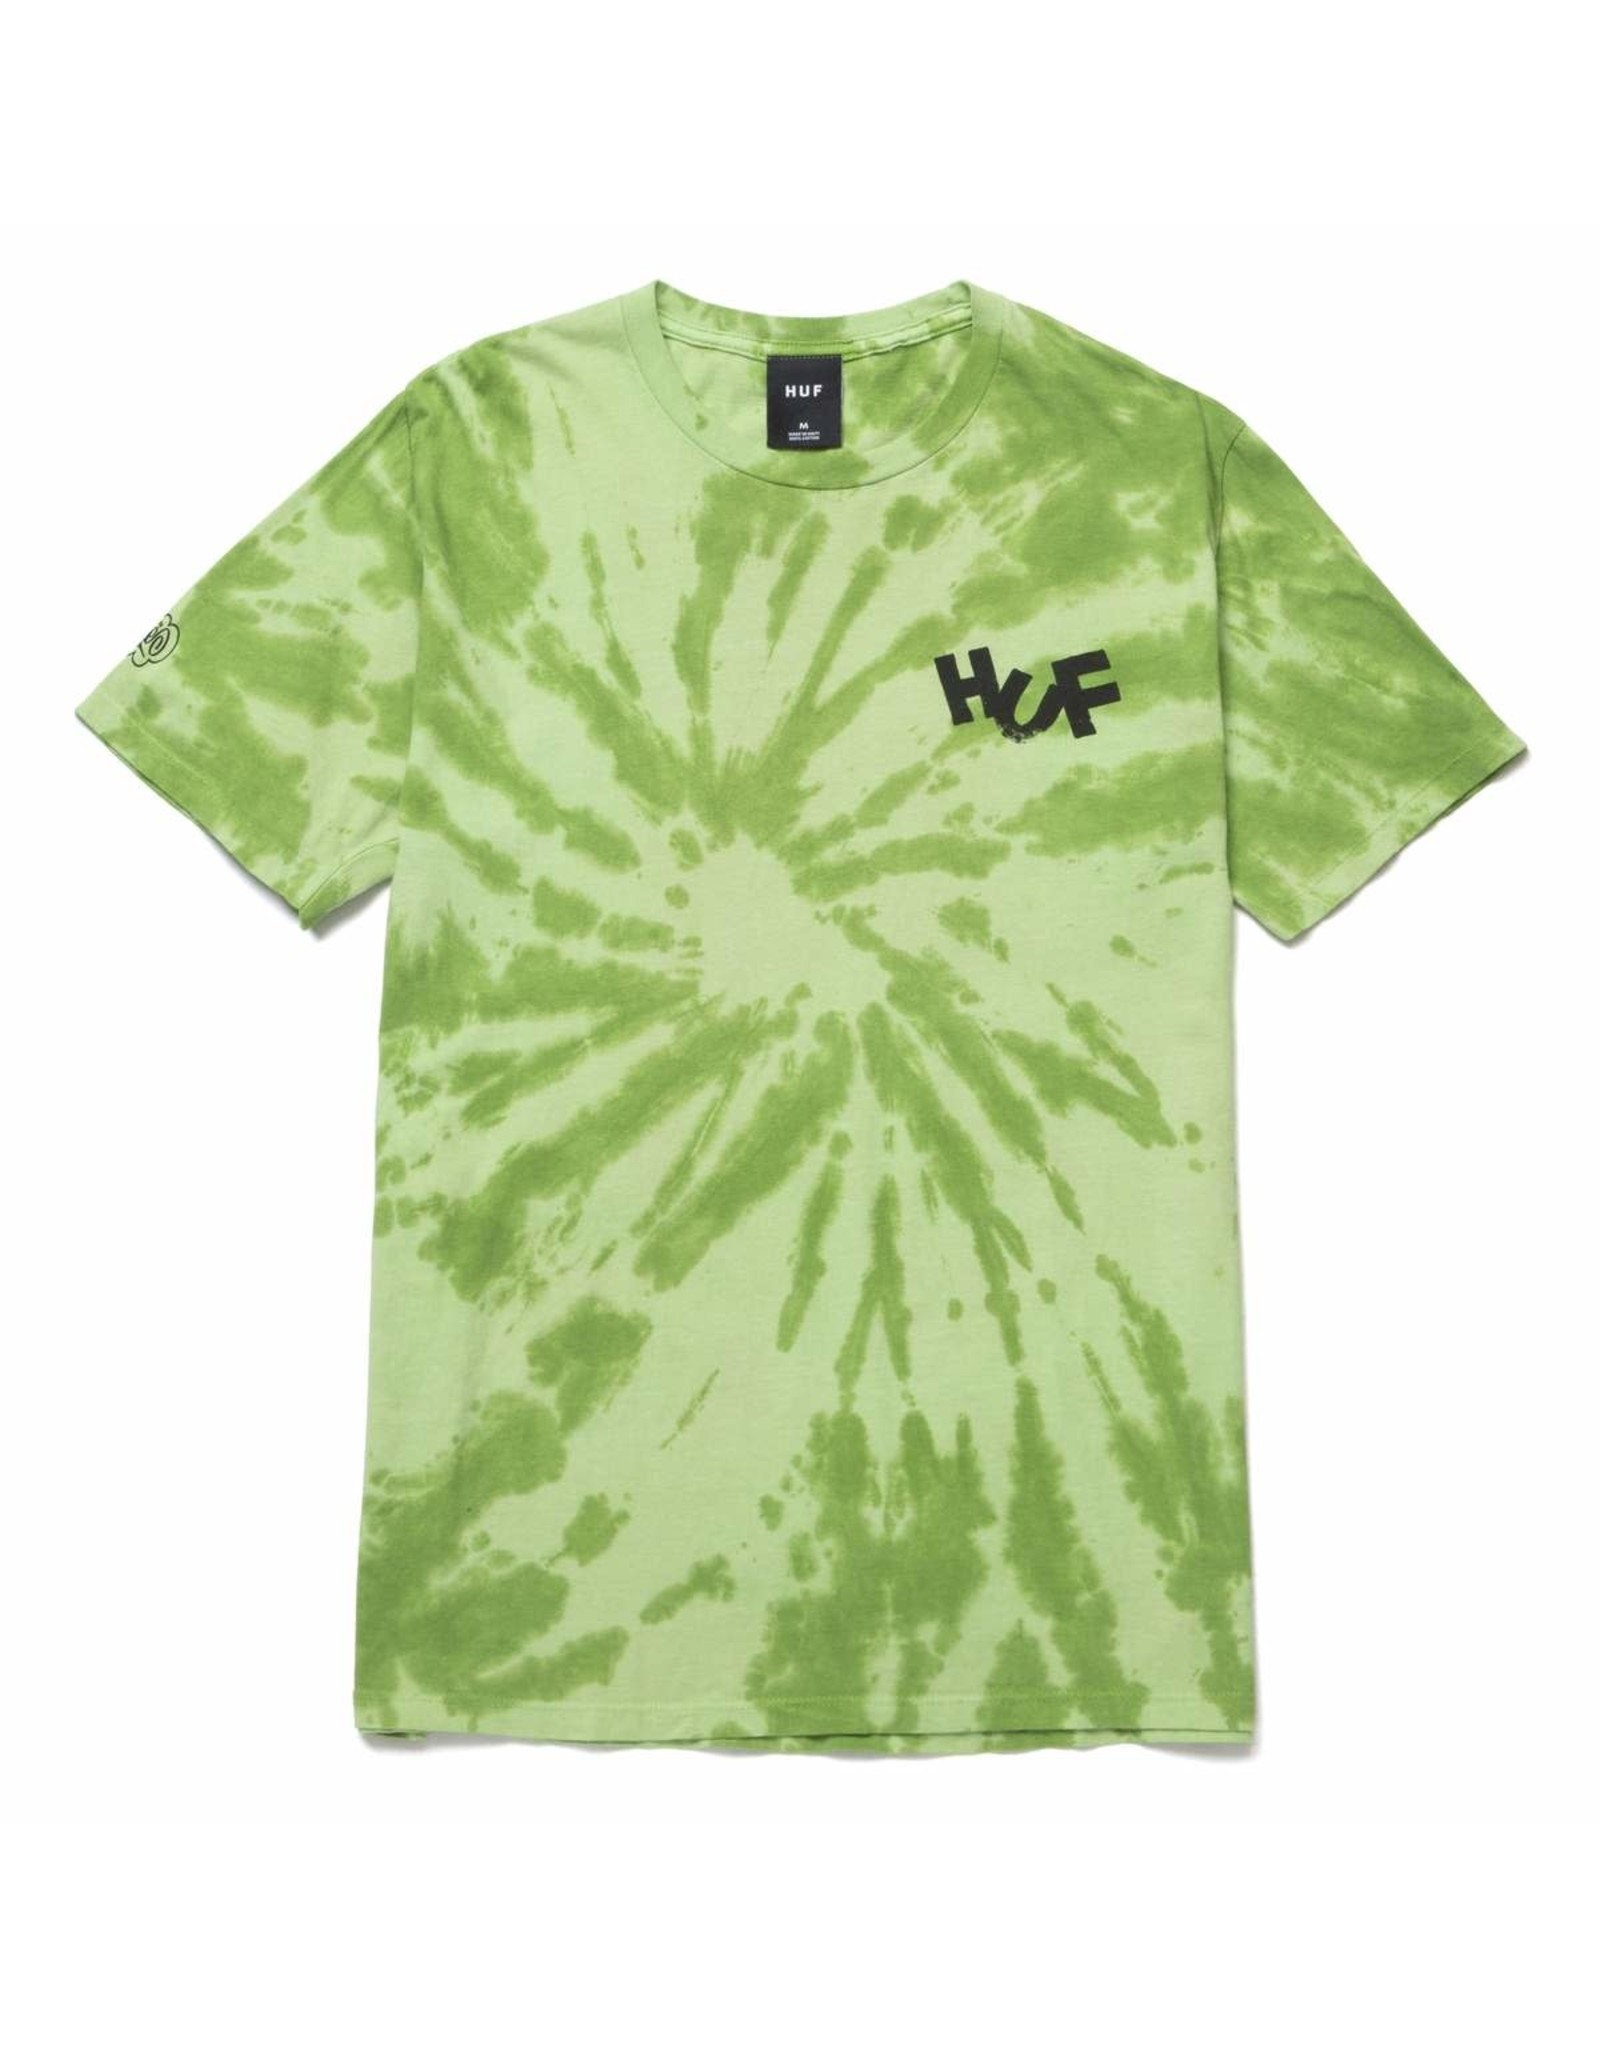 huf Huf - T-shirt homme haze brush tie dye lime